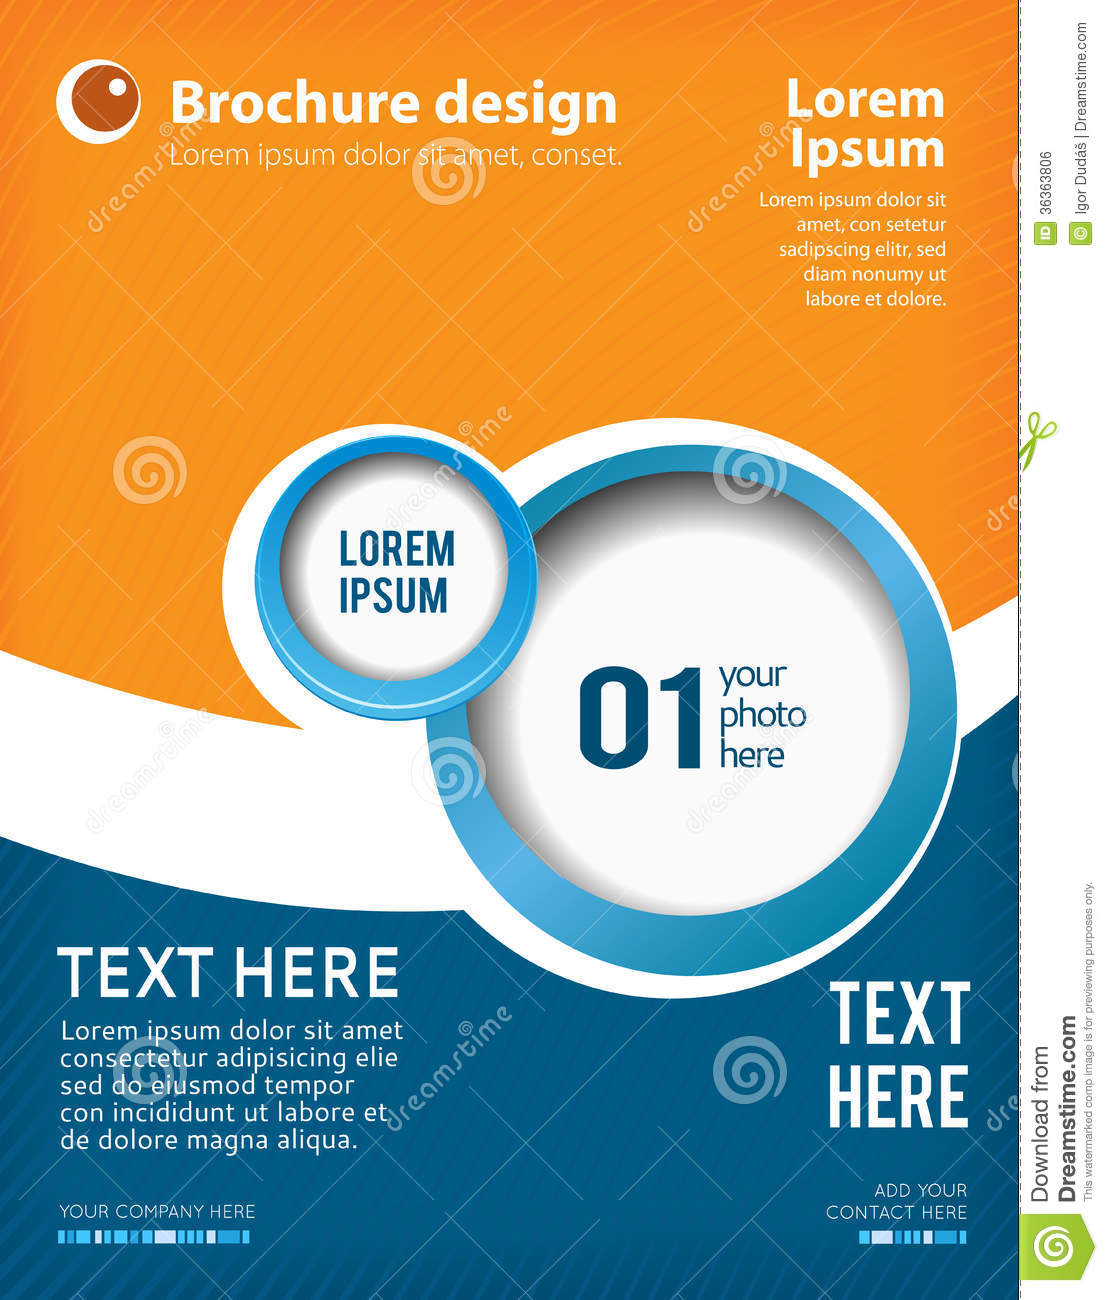 Poster design template poster design template design layout template royalty free stock image image 36363806